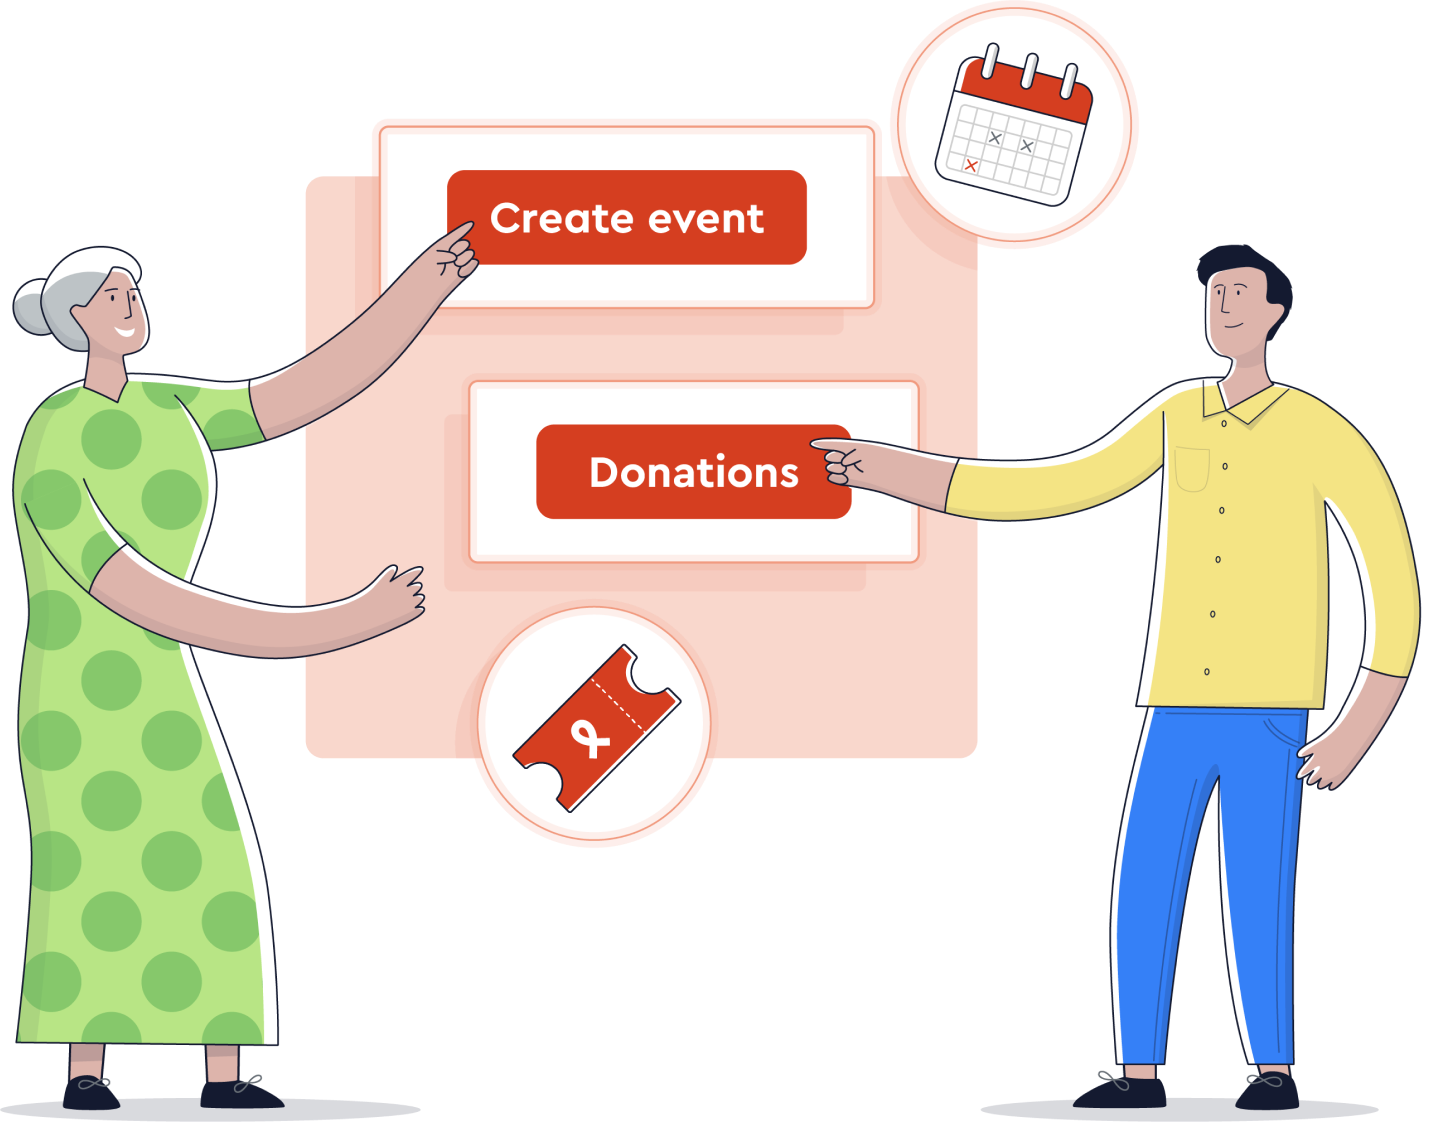 Enthuse Community Fundraising - Create events and collect donations